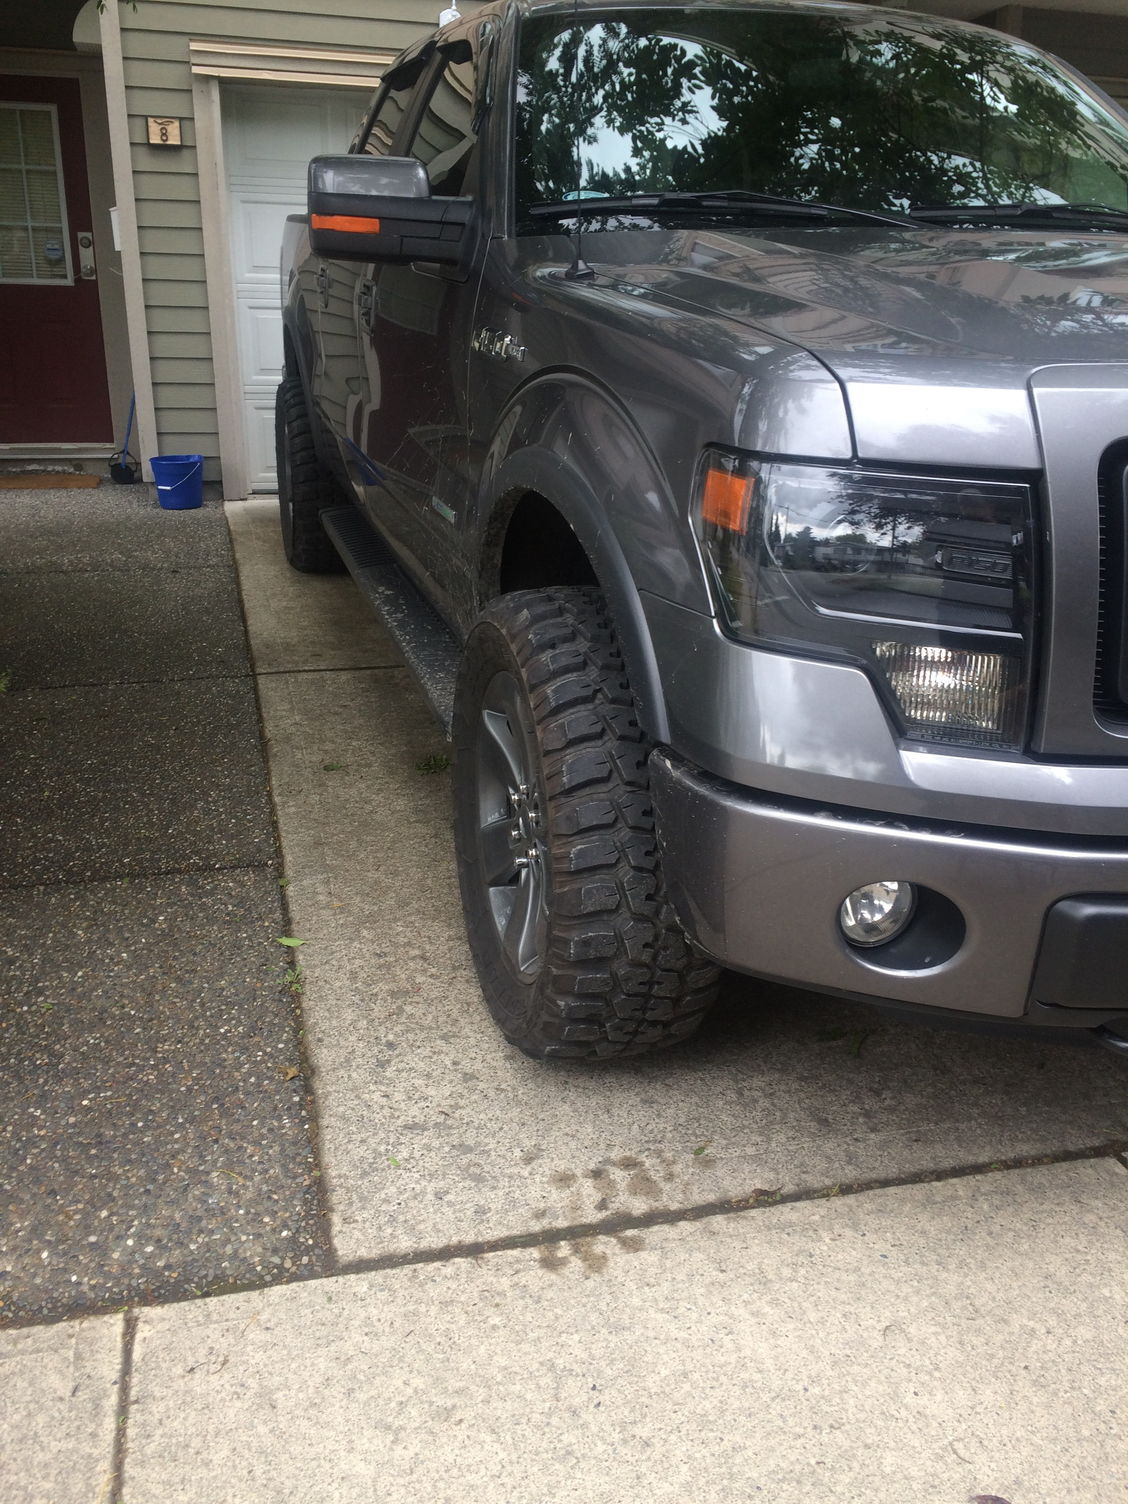 2013 fx4 with 2 5 level stock fx4 wheels and 33x12 5r20 federal tires and 2 spacers